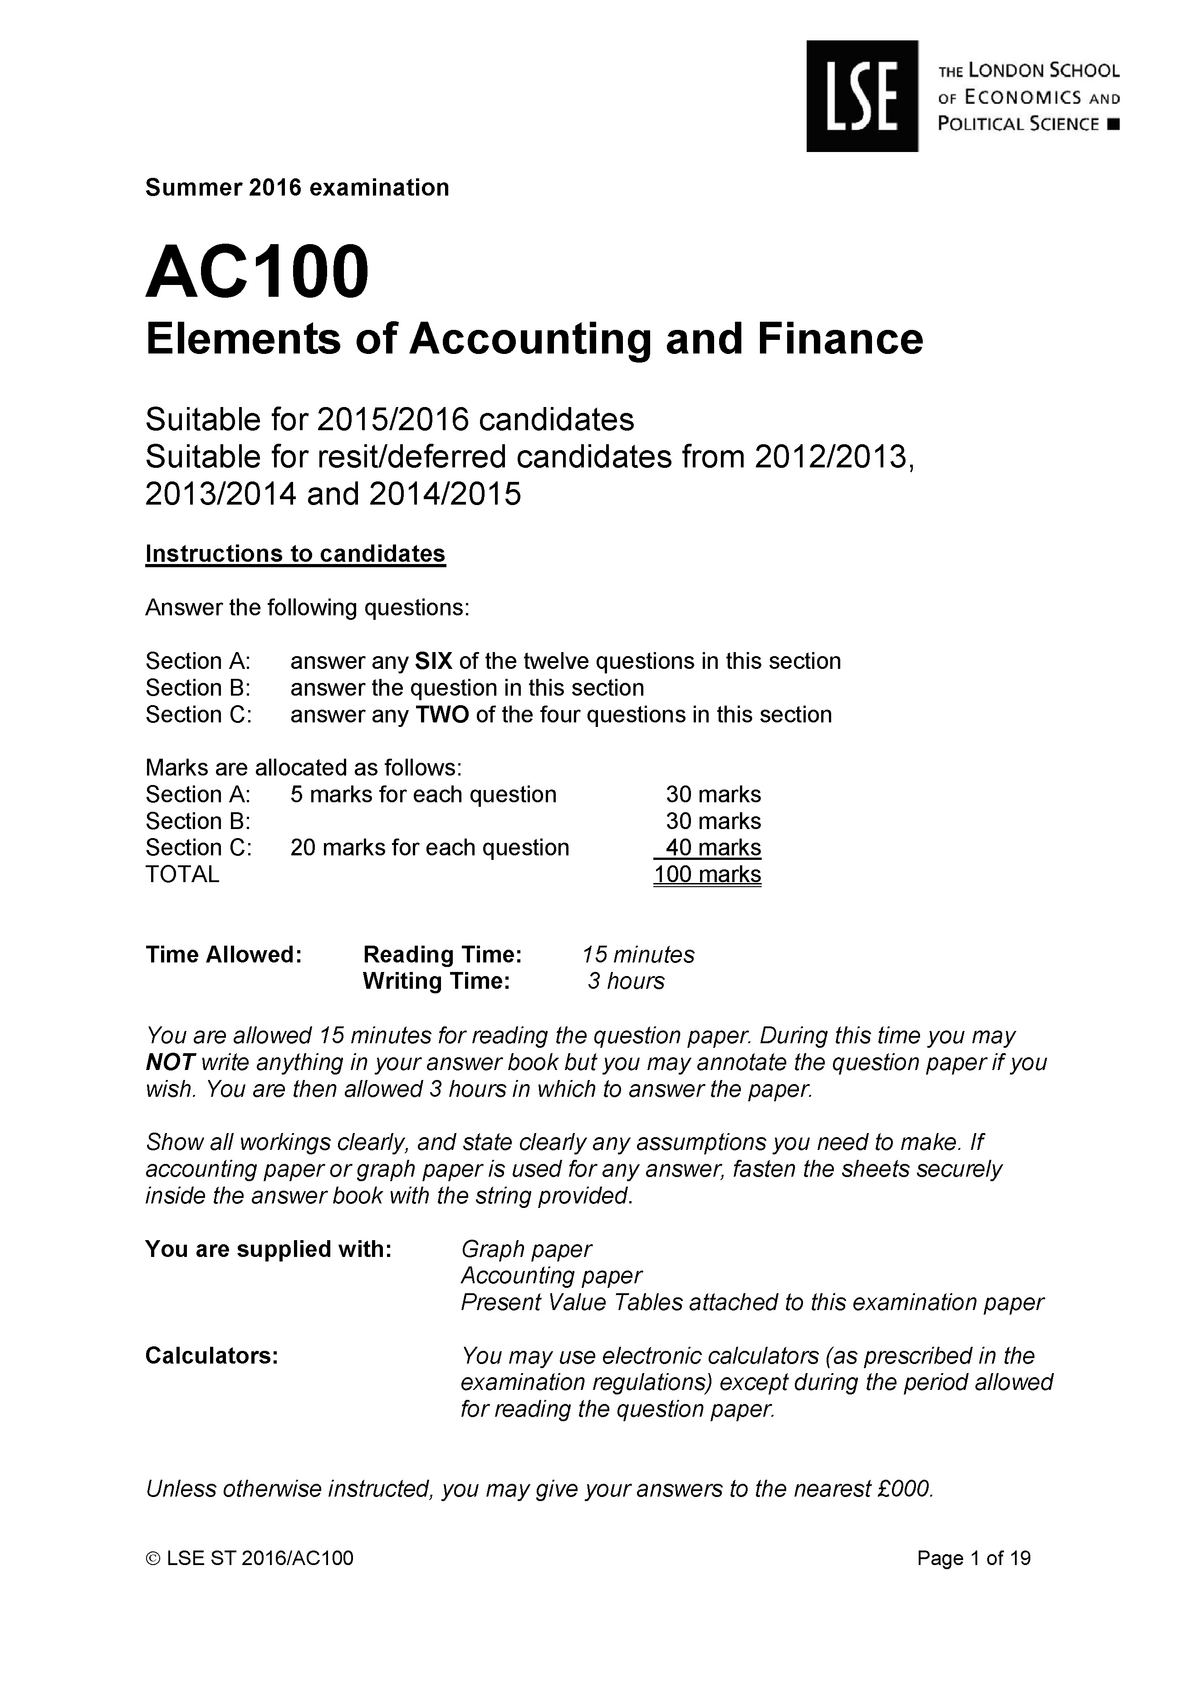 Exam 2016 - AC100: Elements of Accounting and Finance - StuDocu